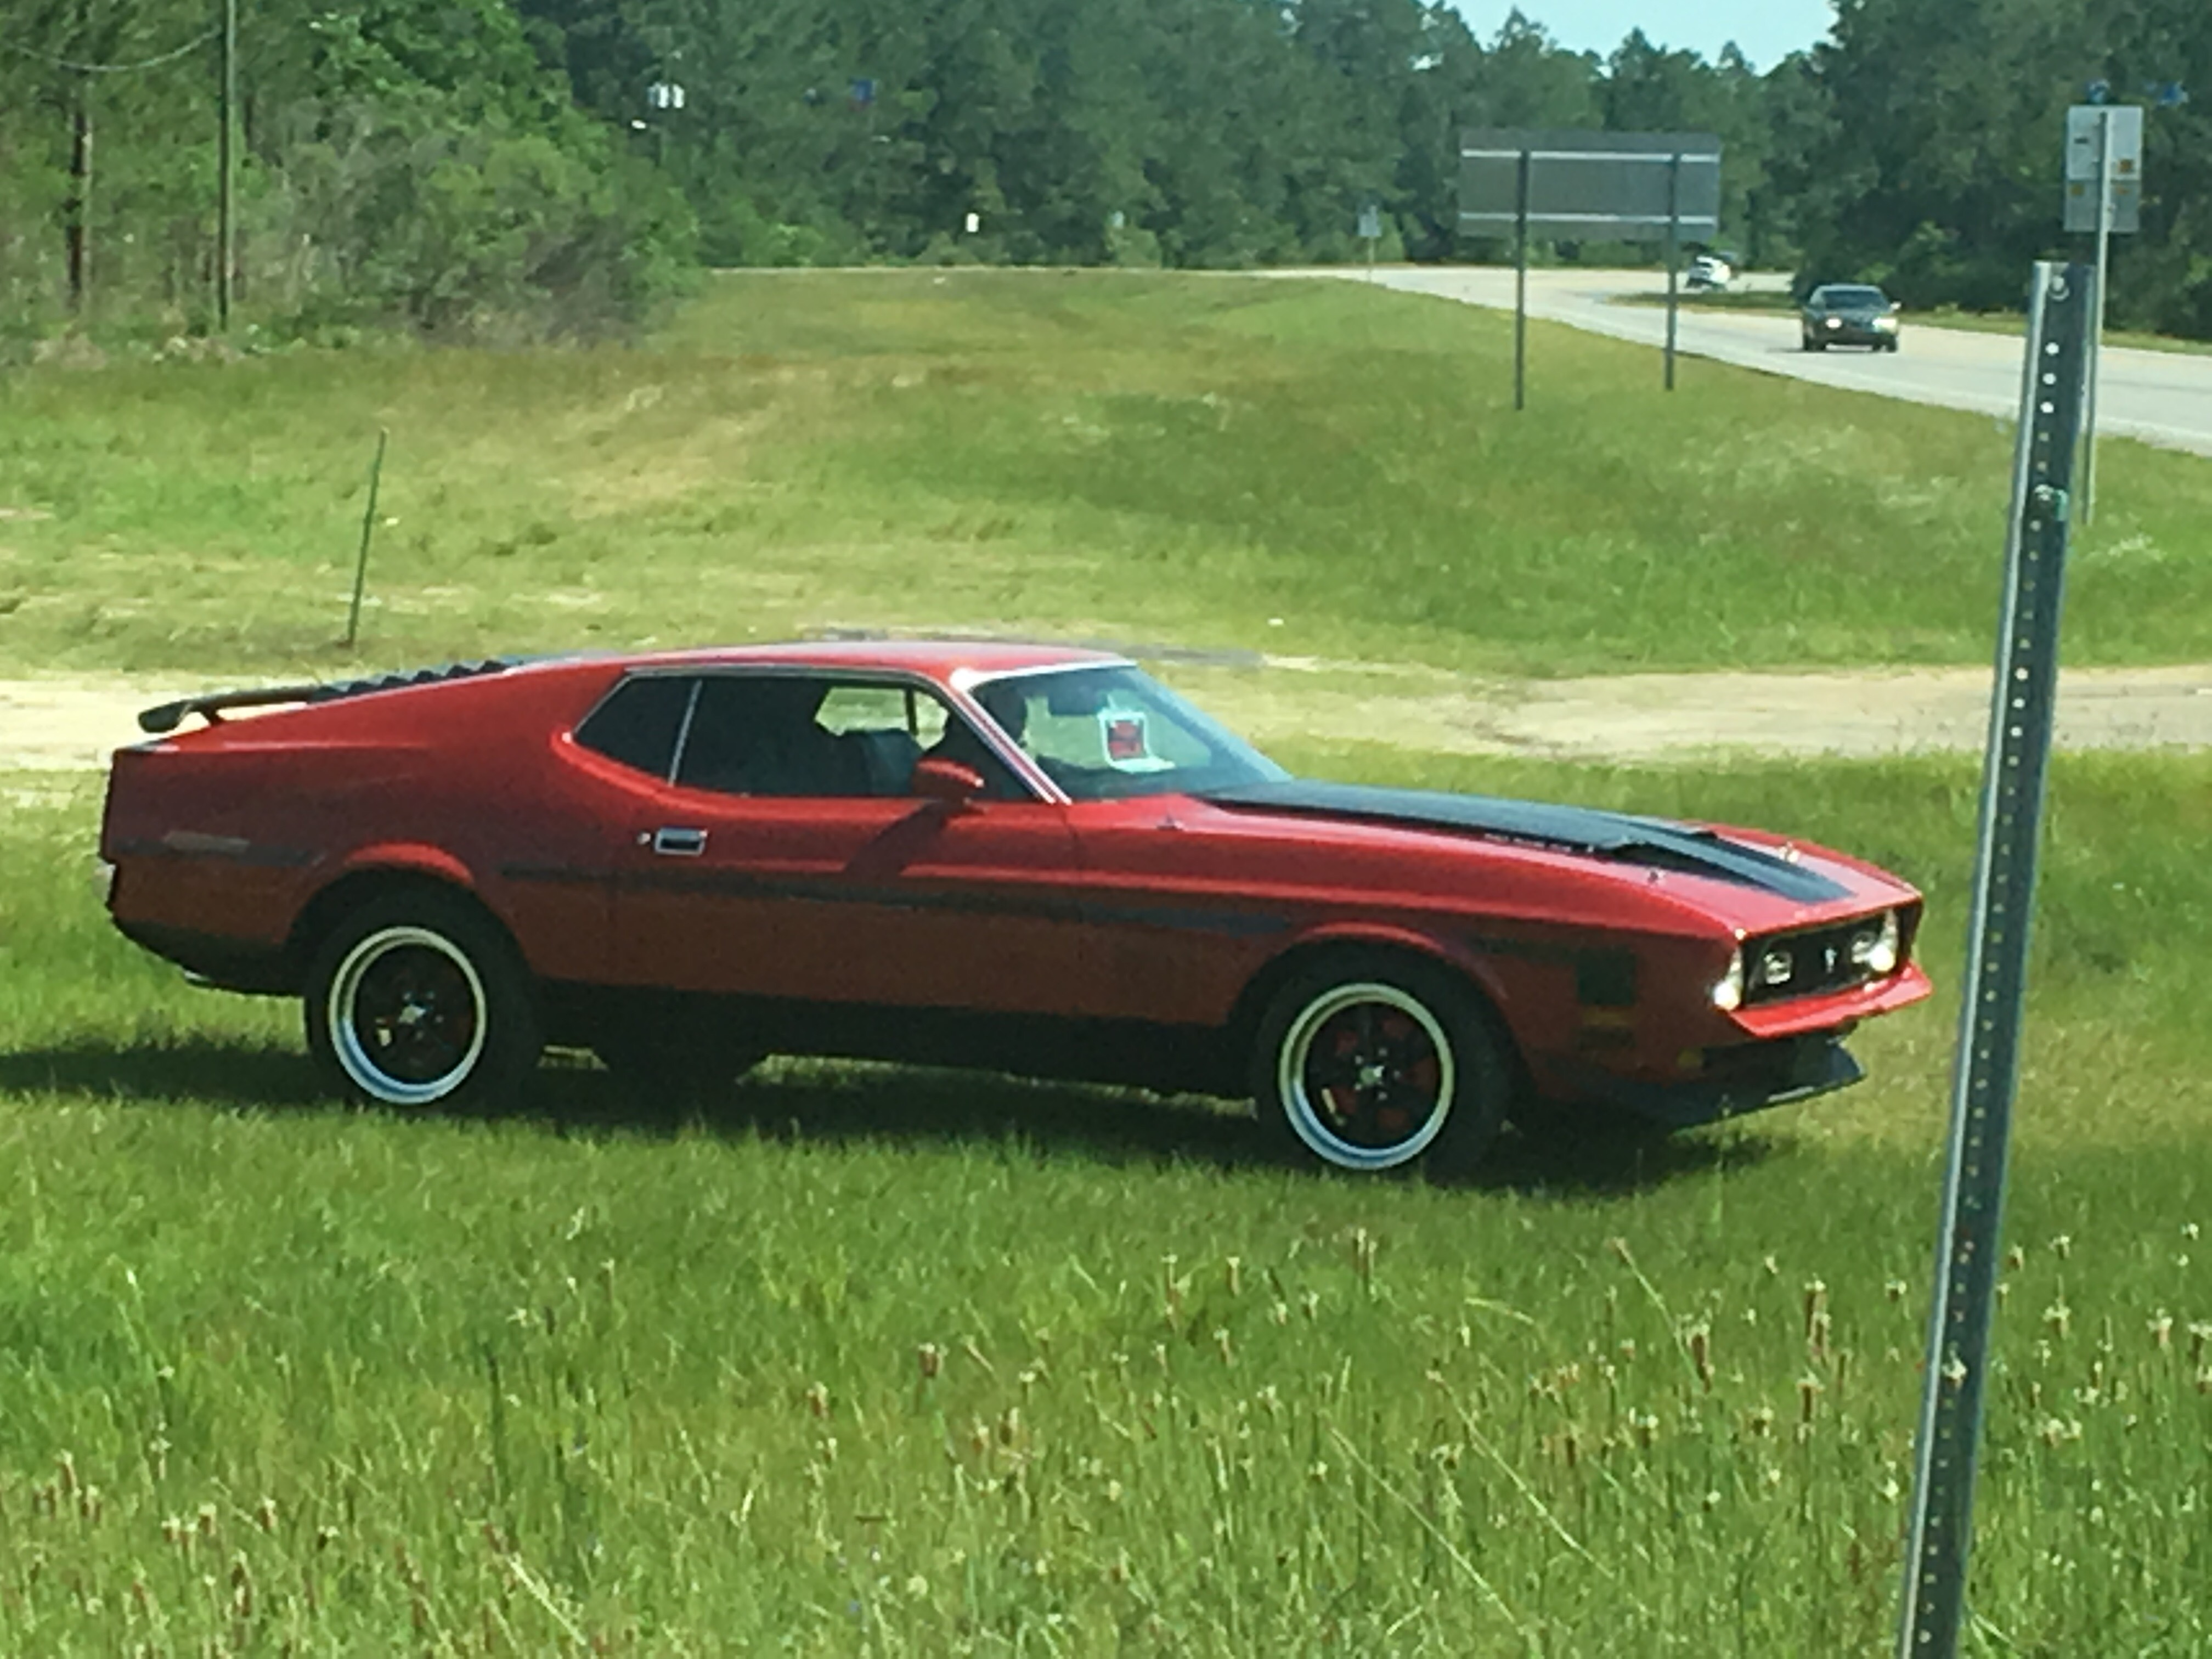 79 mustang mach 1 fastback spotted outside of the air force base